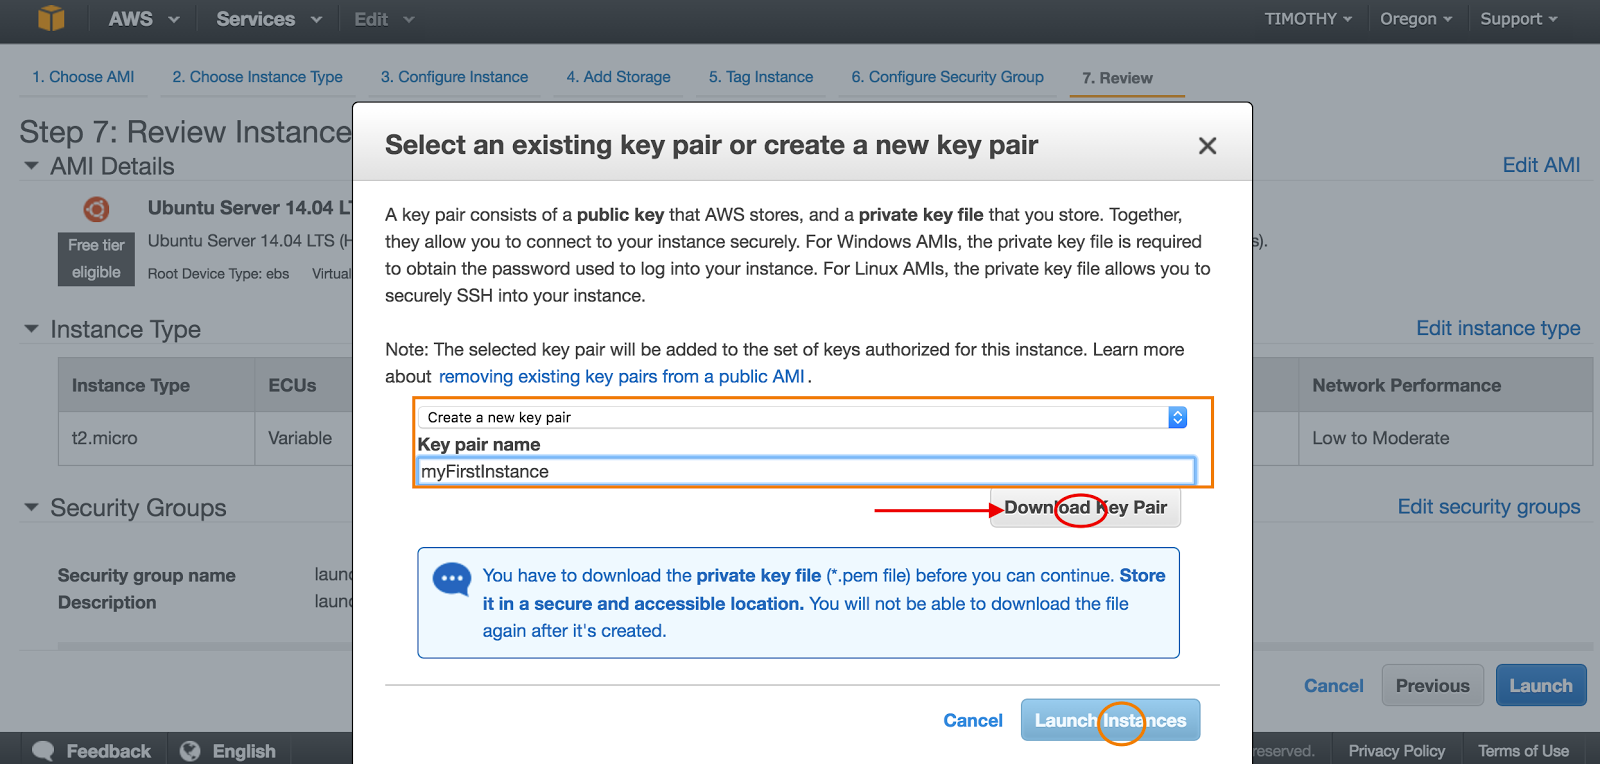 Download Key Pair